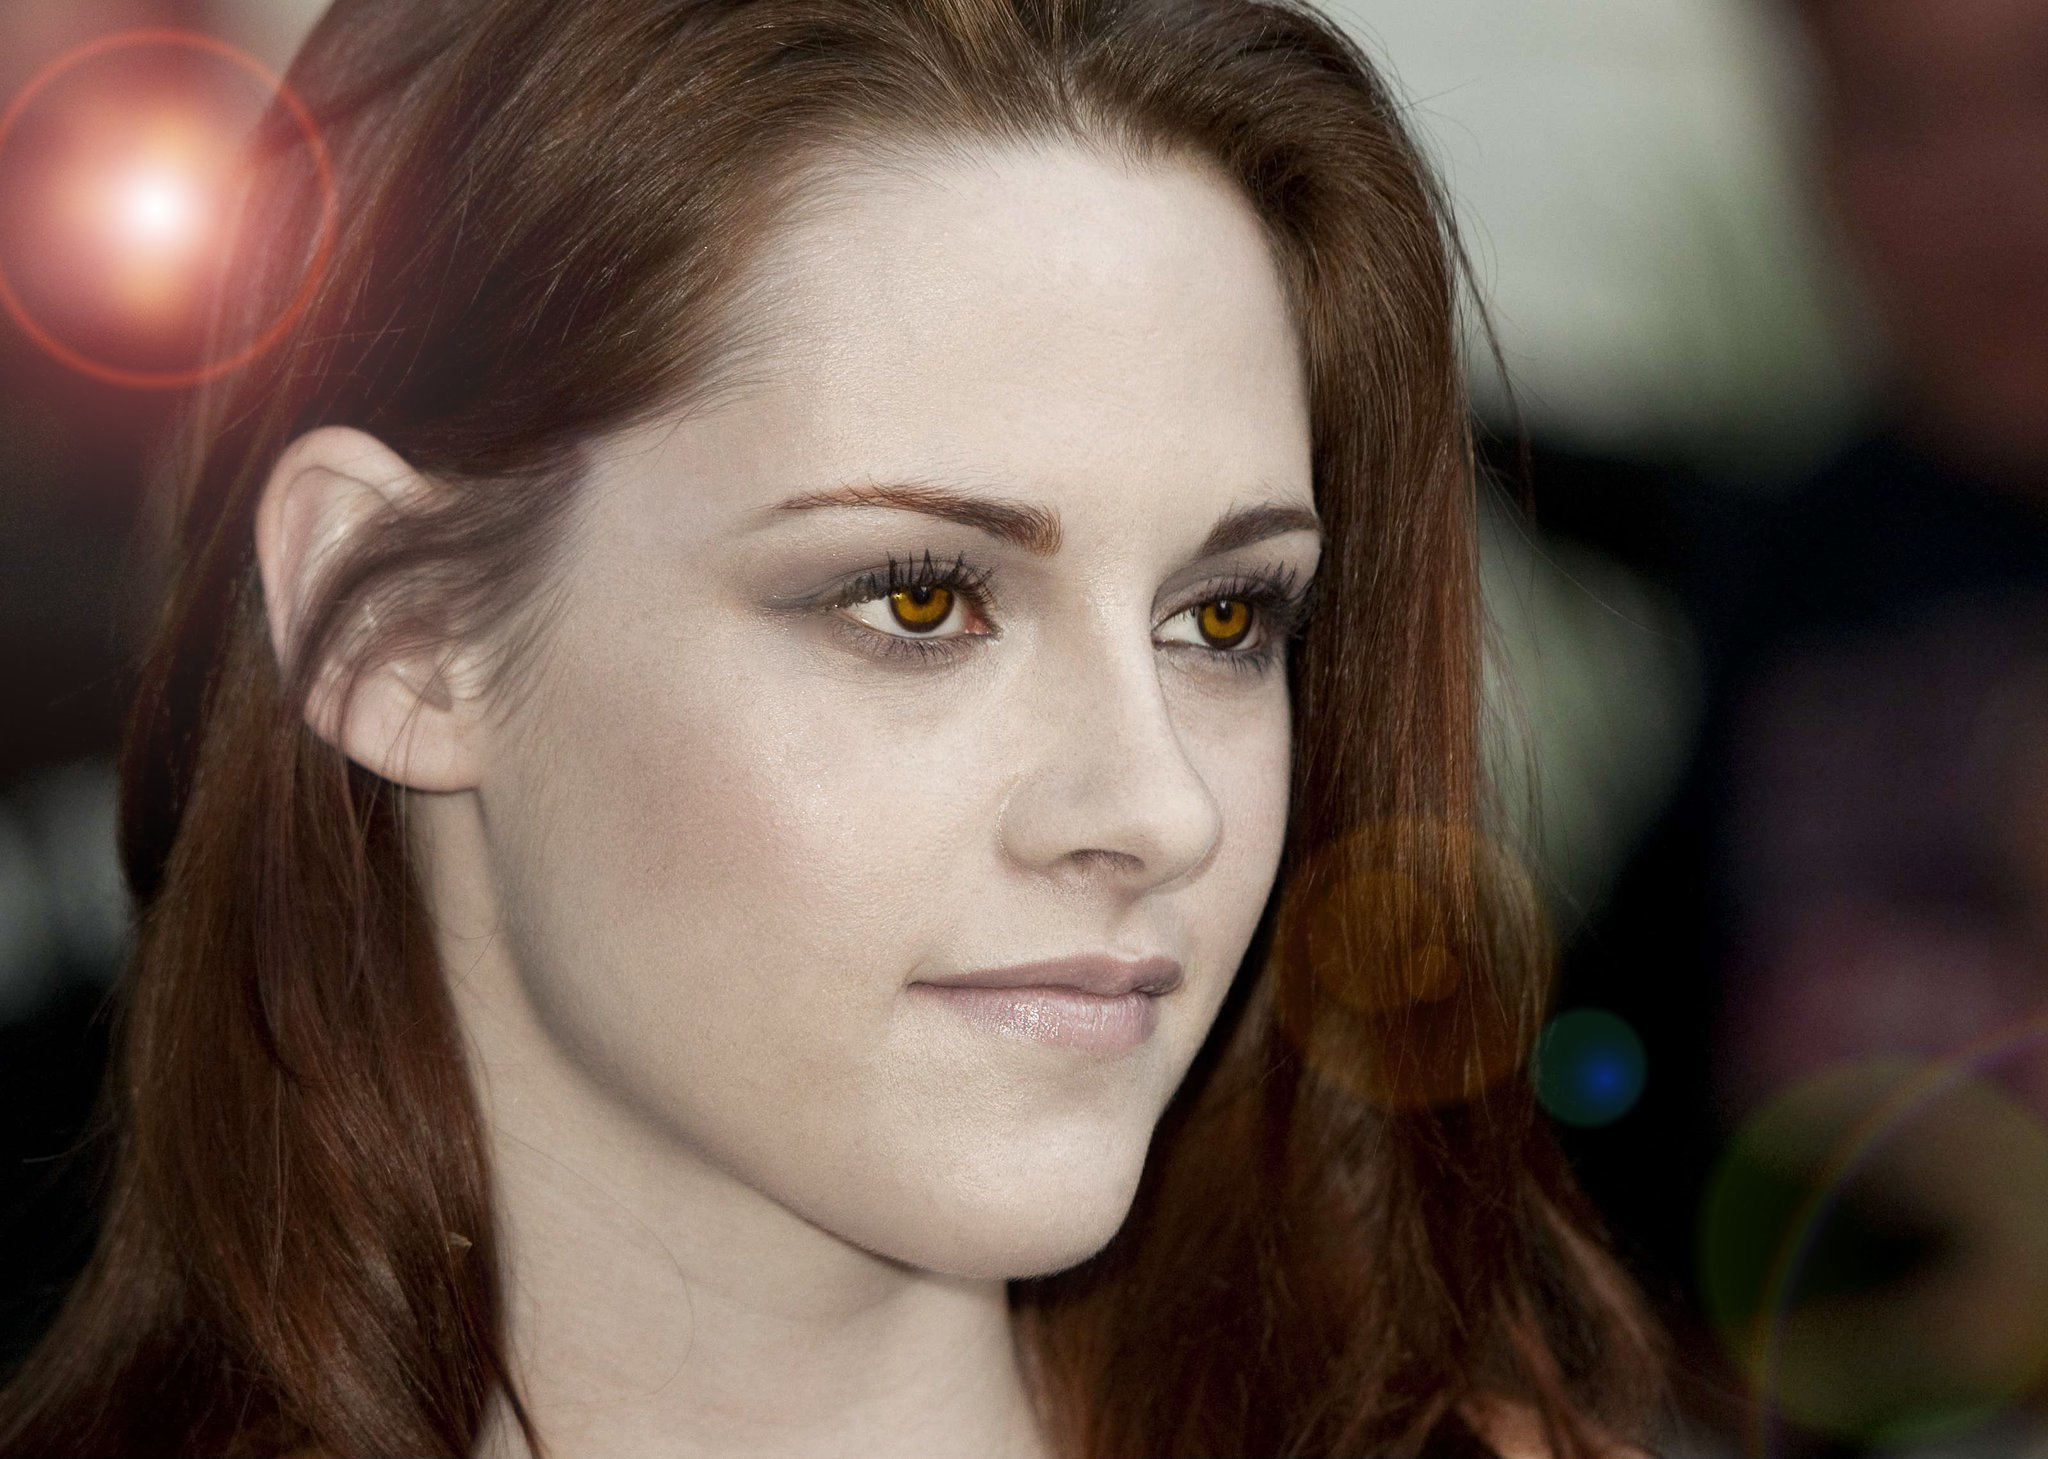 Bella From Twilight as a Vampire